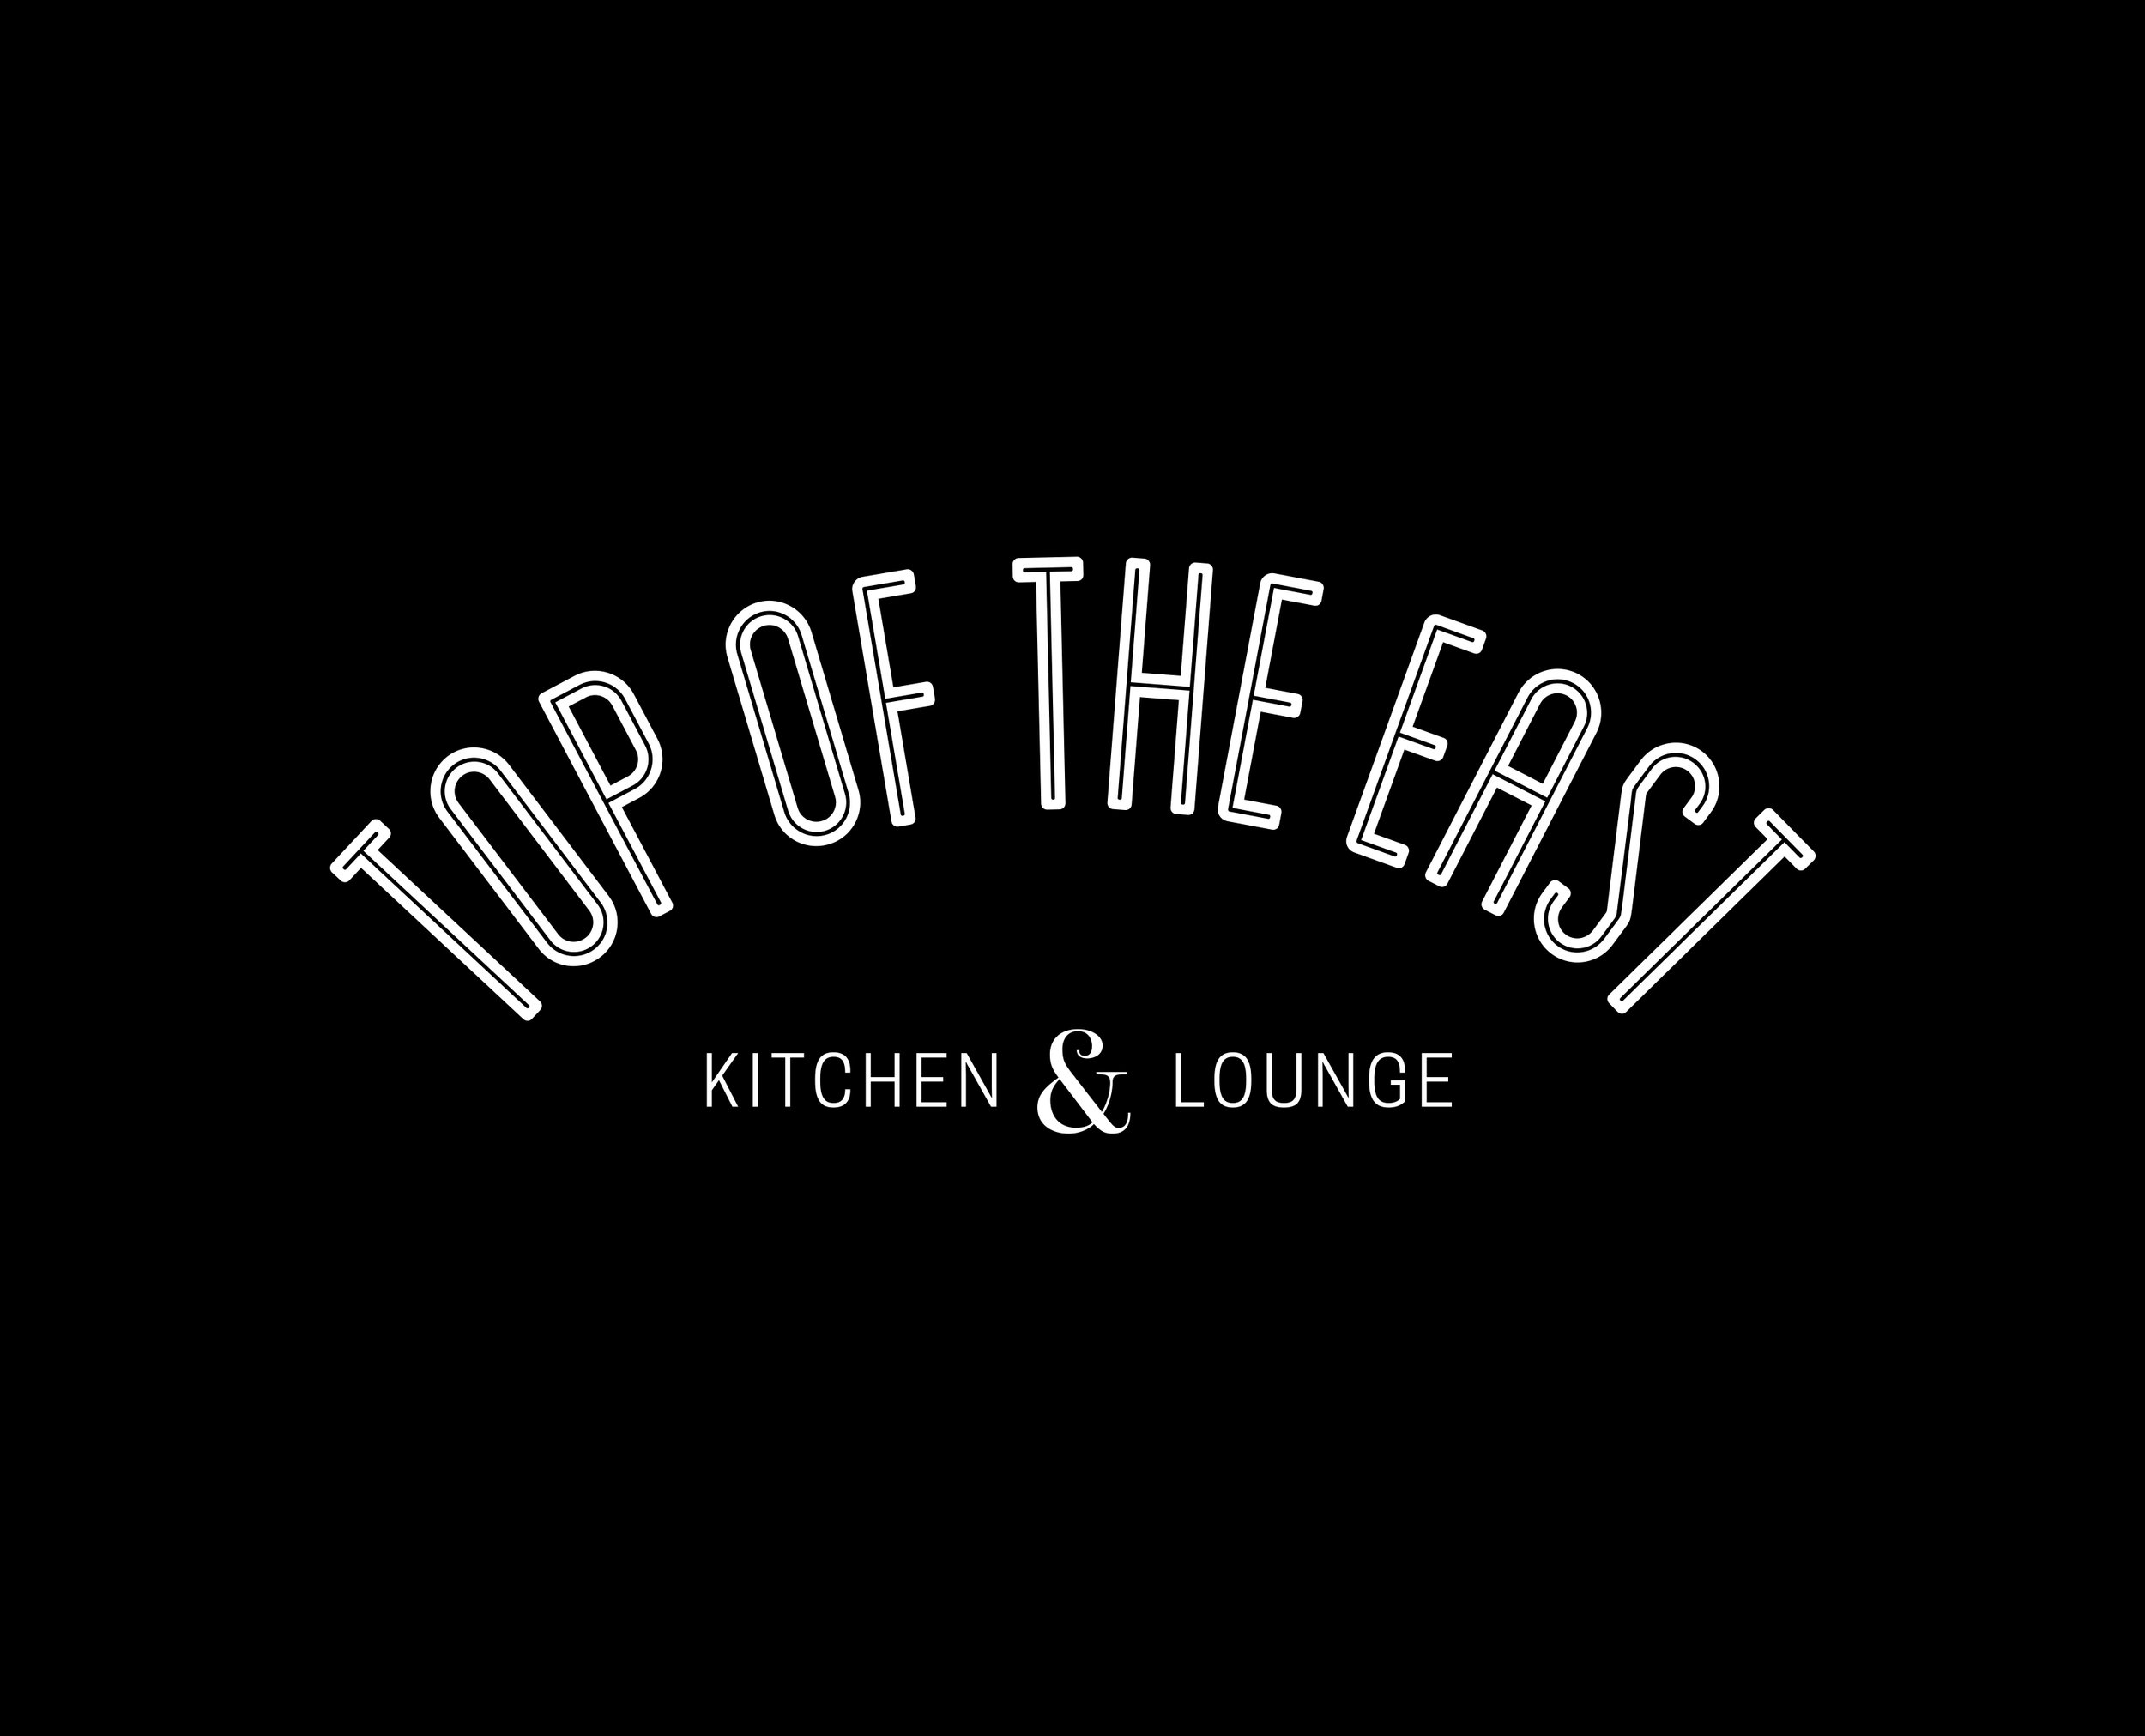 Top of the East